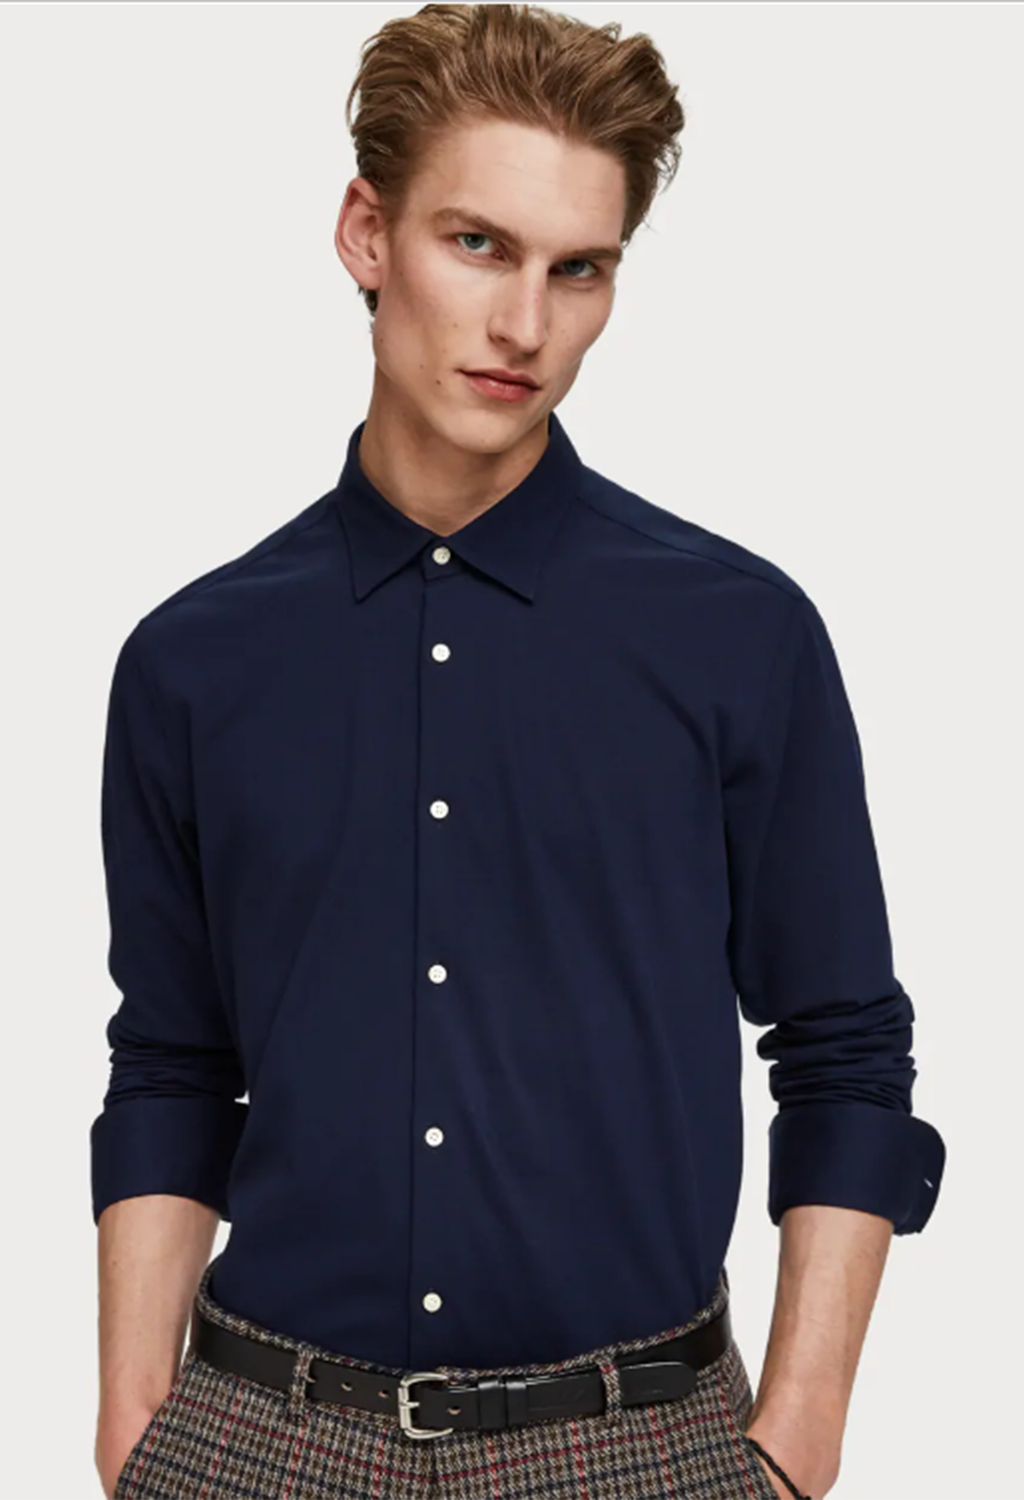 .Scotch & Soda Slim Fit Knitted Shirt